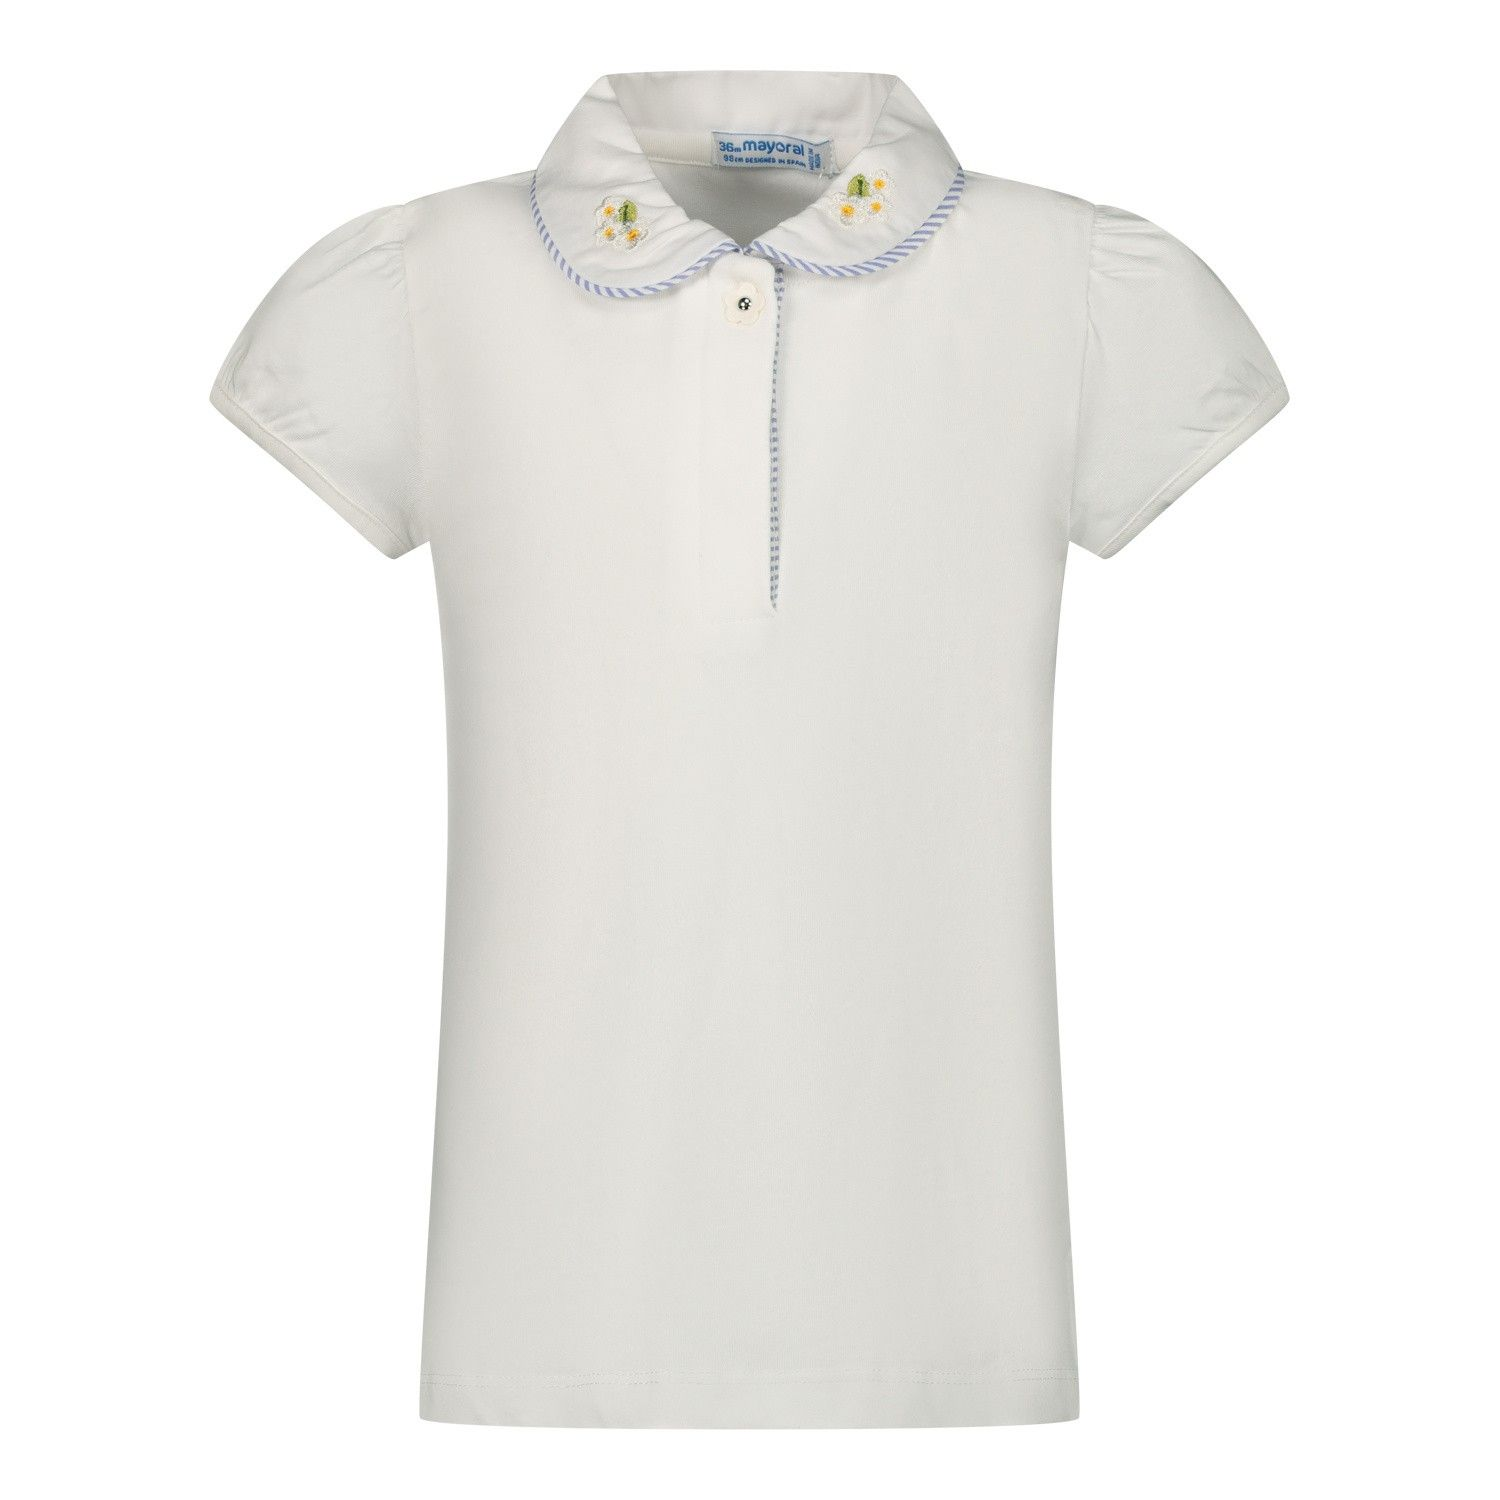 Picture of Mayoral 1167 baby poloshirt white